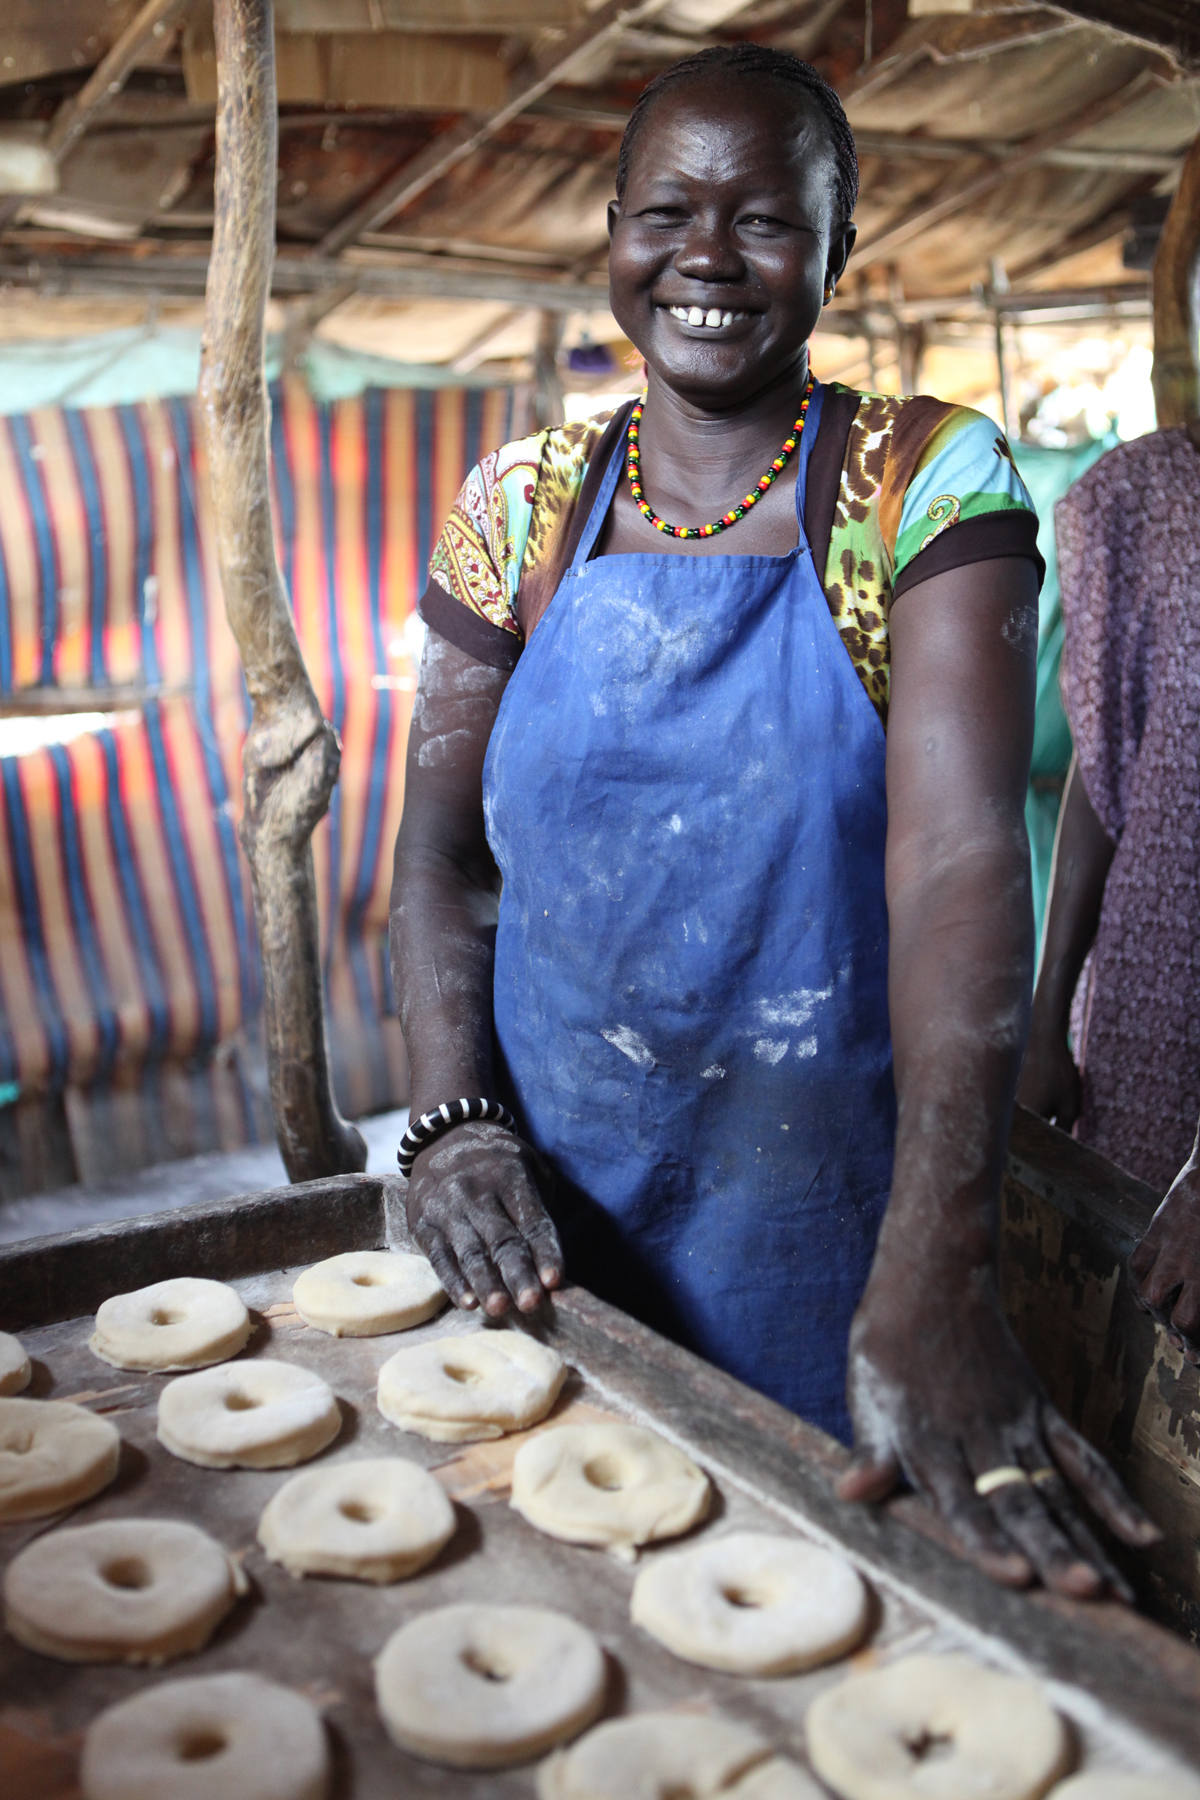 Women for Women International Sudan Chapter is opening a bakery for women from Rumbek East, Lakes State, South Sudan. While the bakery construction is completed, WfWi contracts a local baker to train the women in making donuts, rolls and bread loaves. Debora Yom learns how to cut donuts from the kneaded dough.